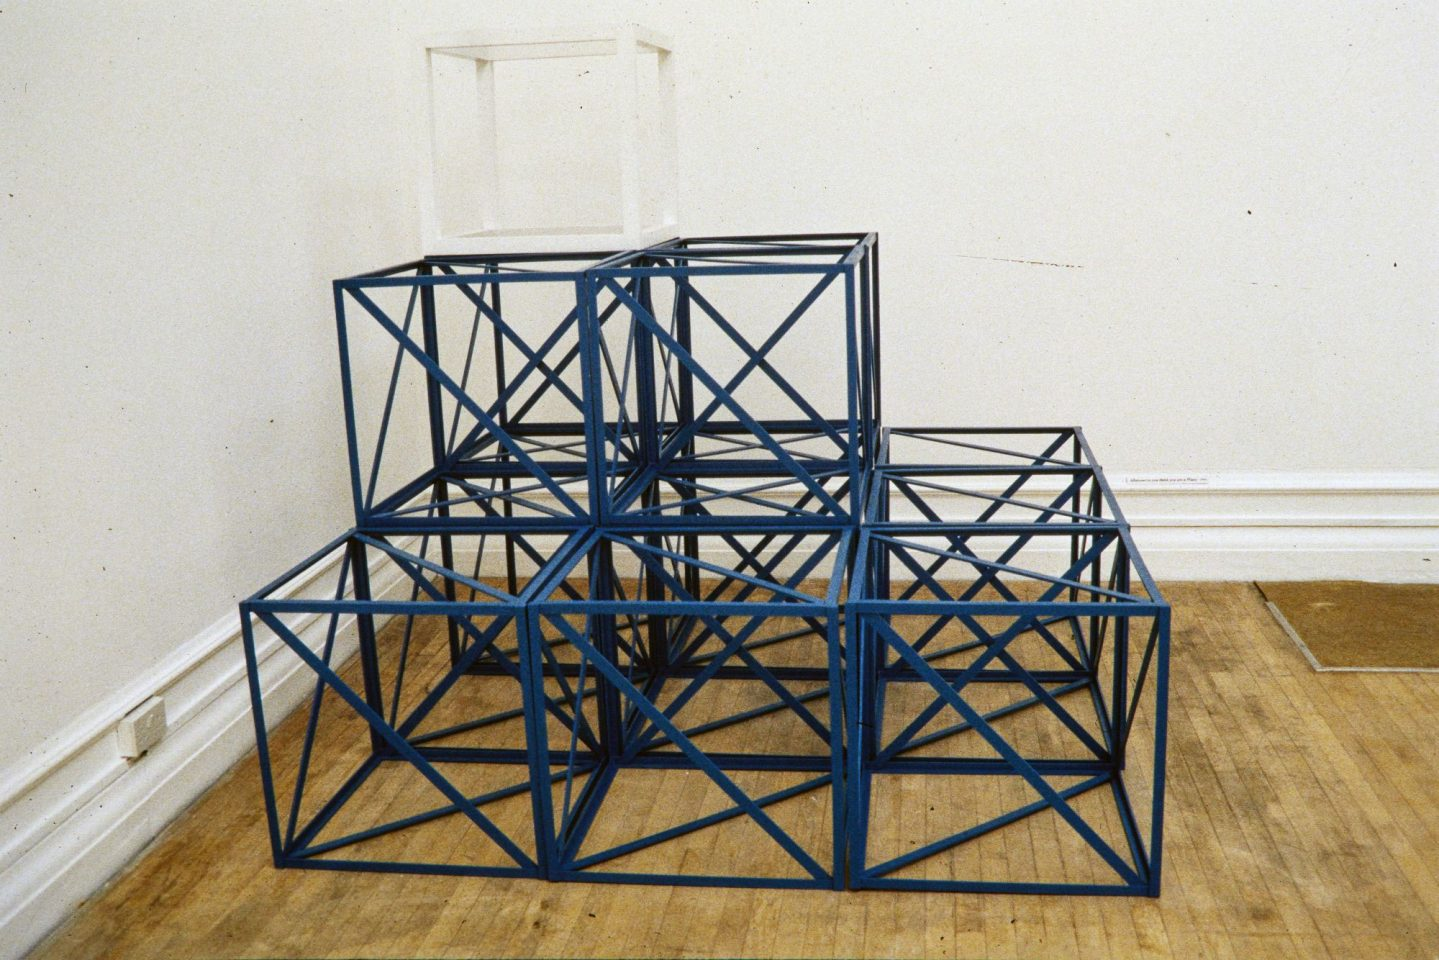 Installation view of Rasheed Araeen's 1994 exhibition.